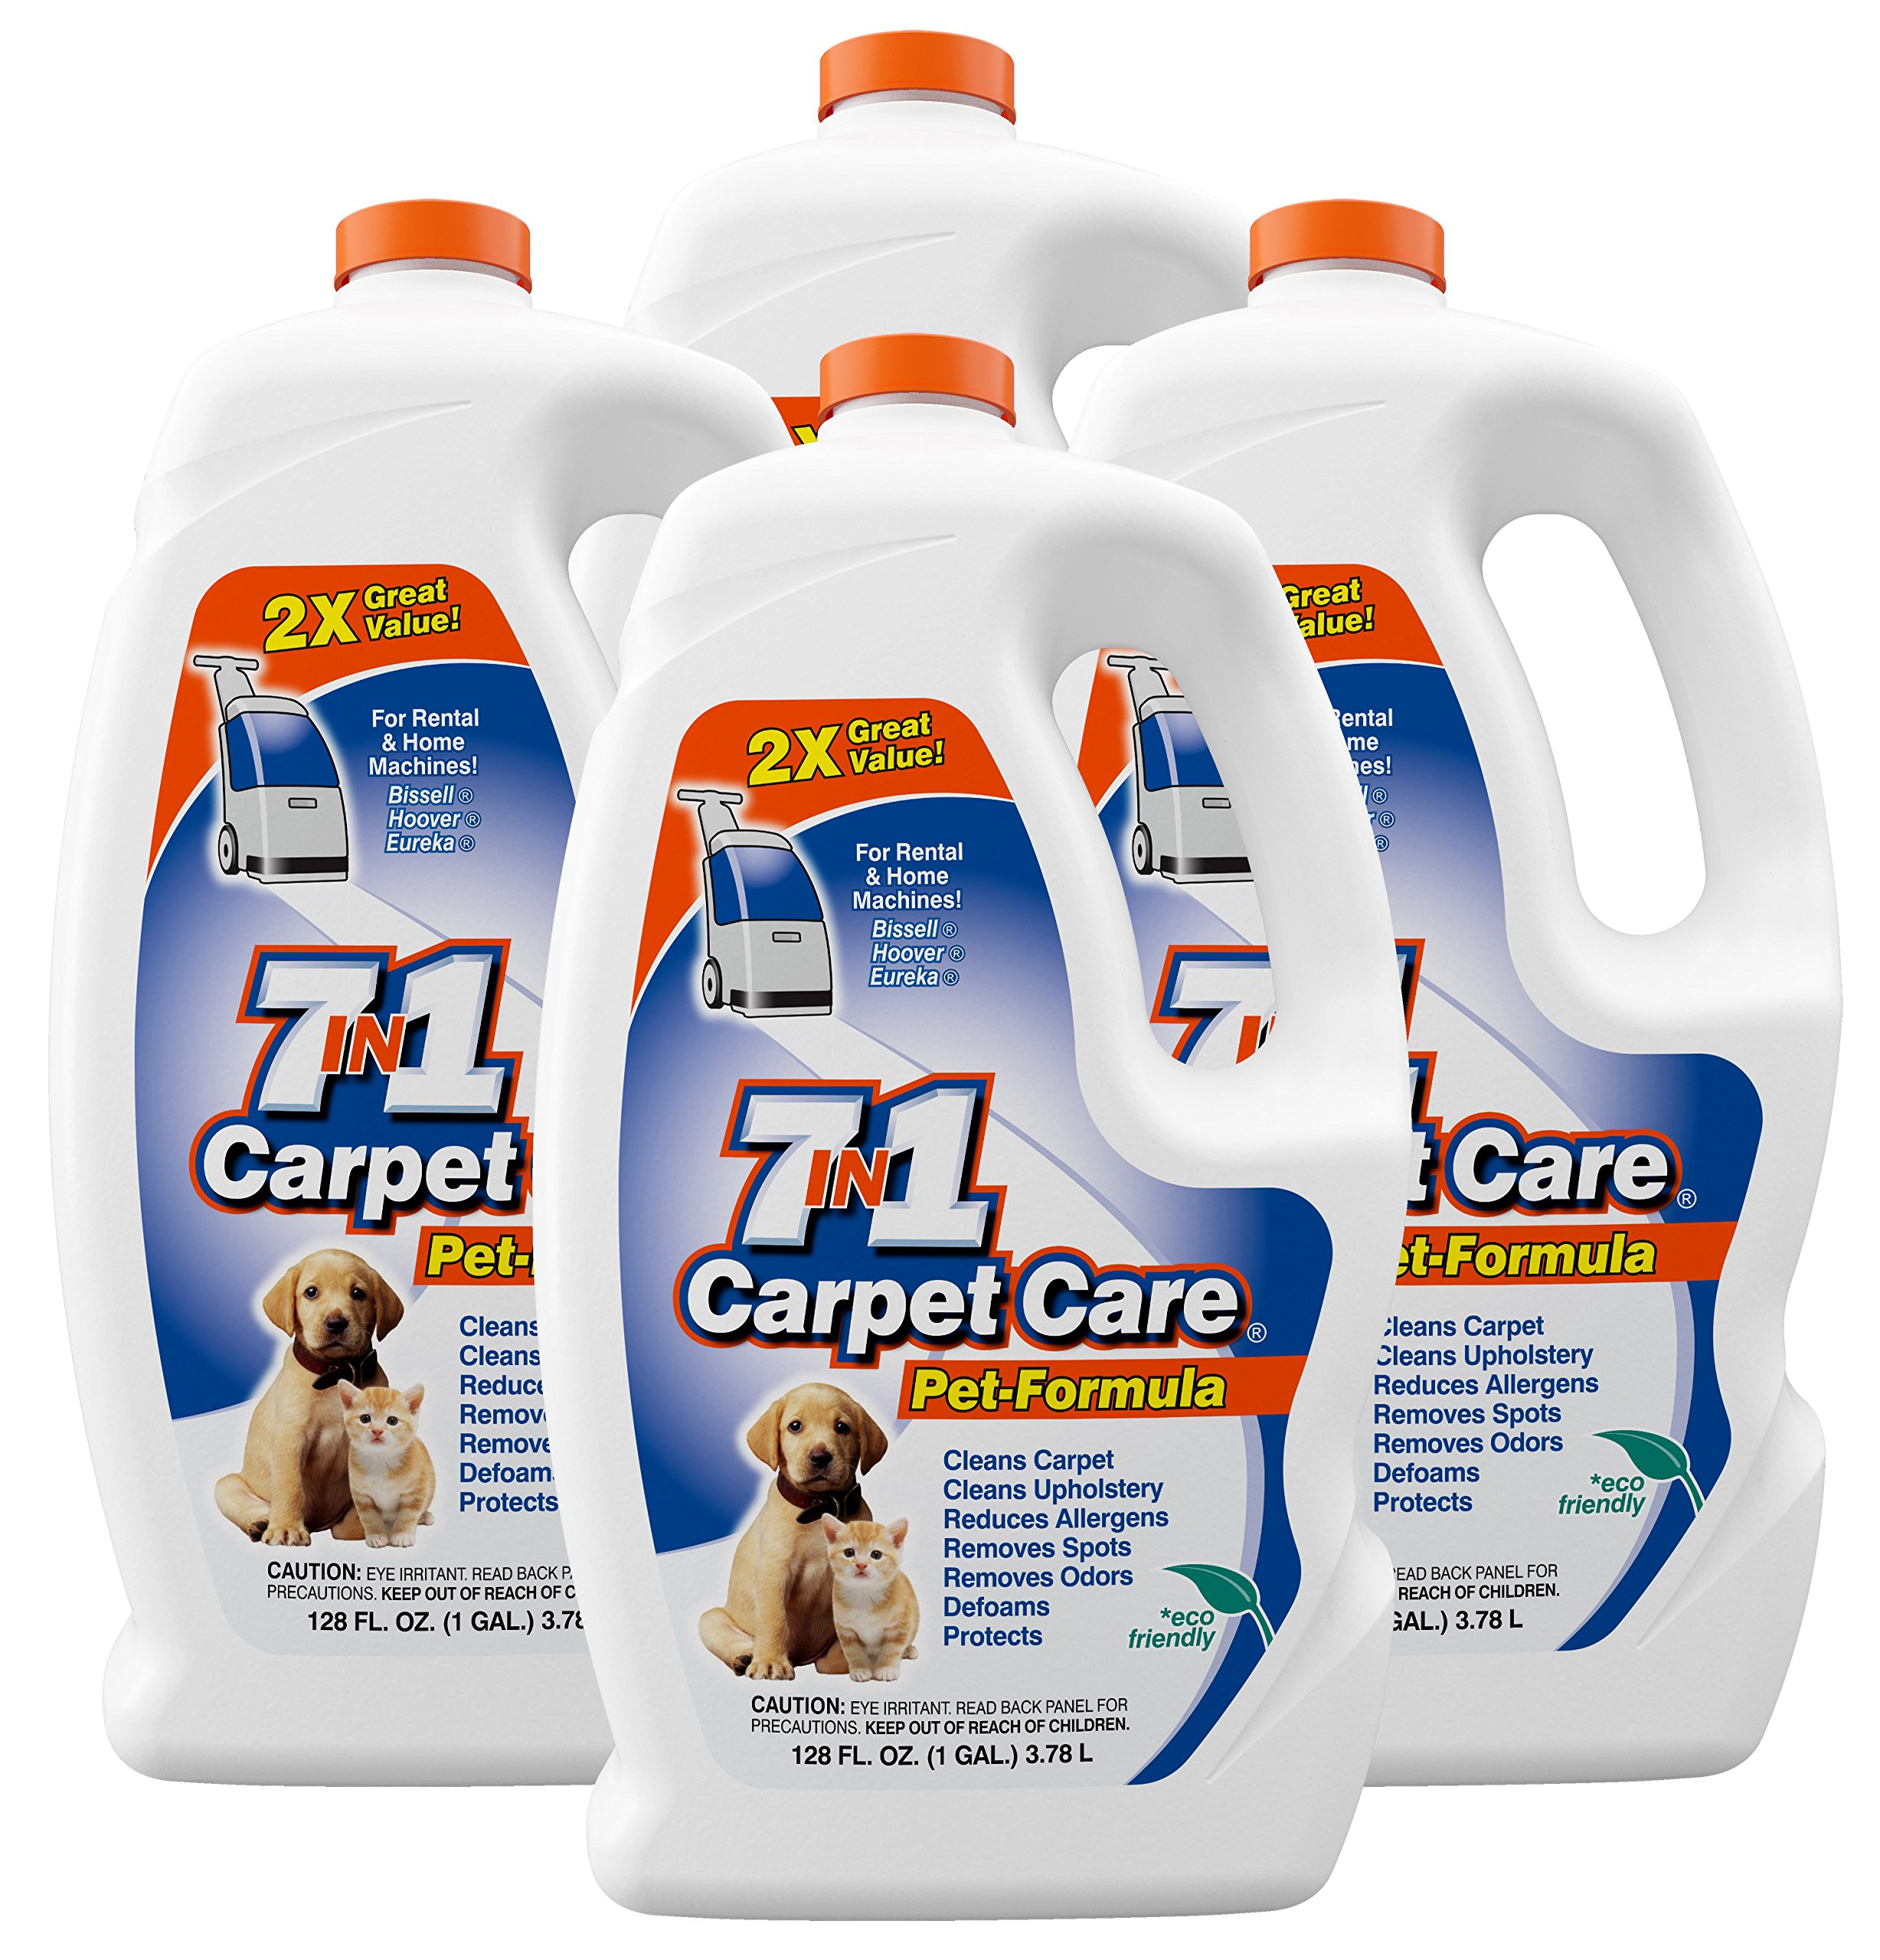 7in1 Carpet Care Pet Formula Carpet Cleaning Solution-One case of four one gallon bottles